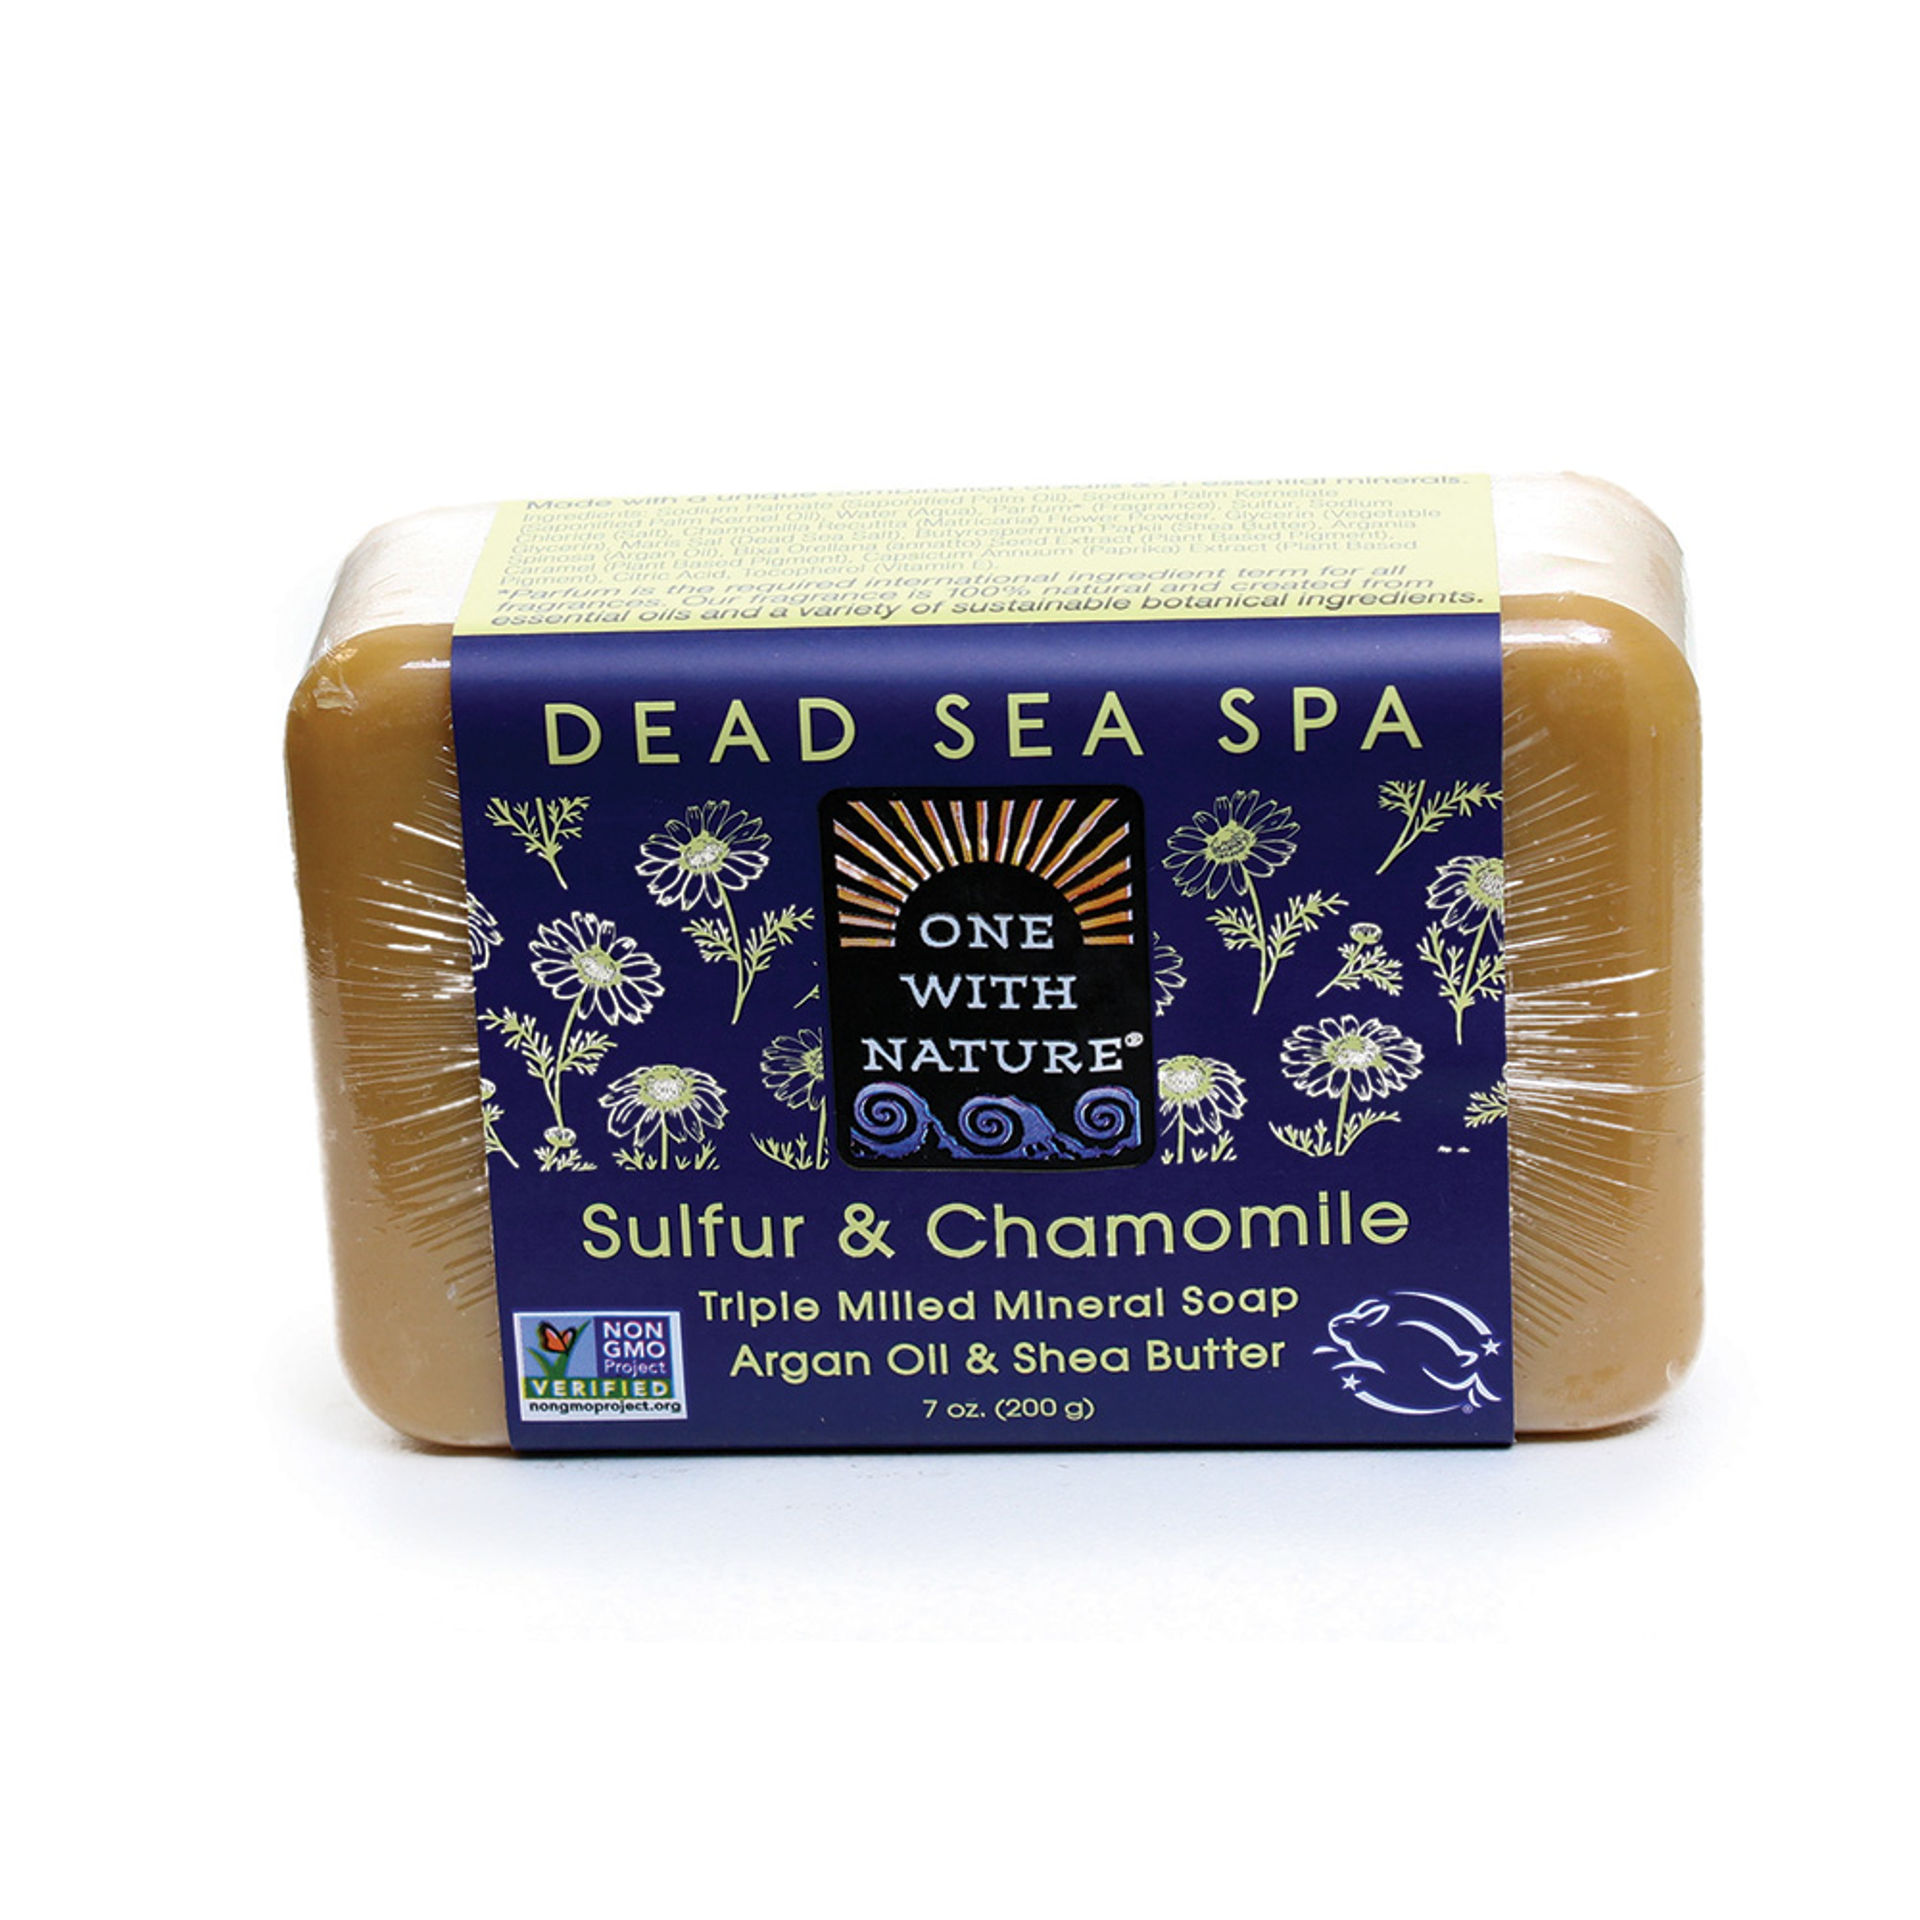 Picture of Sulfur & Chamomile Mineral Soap - 7 oz.